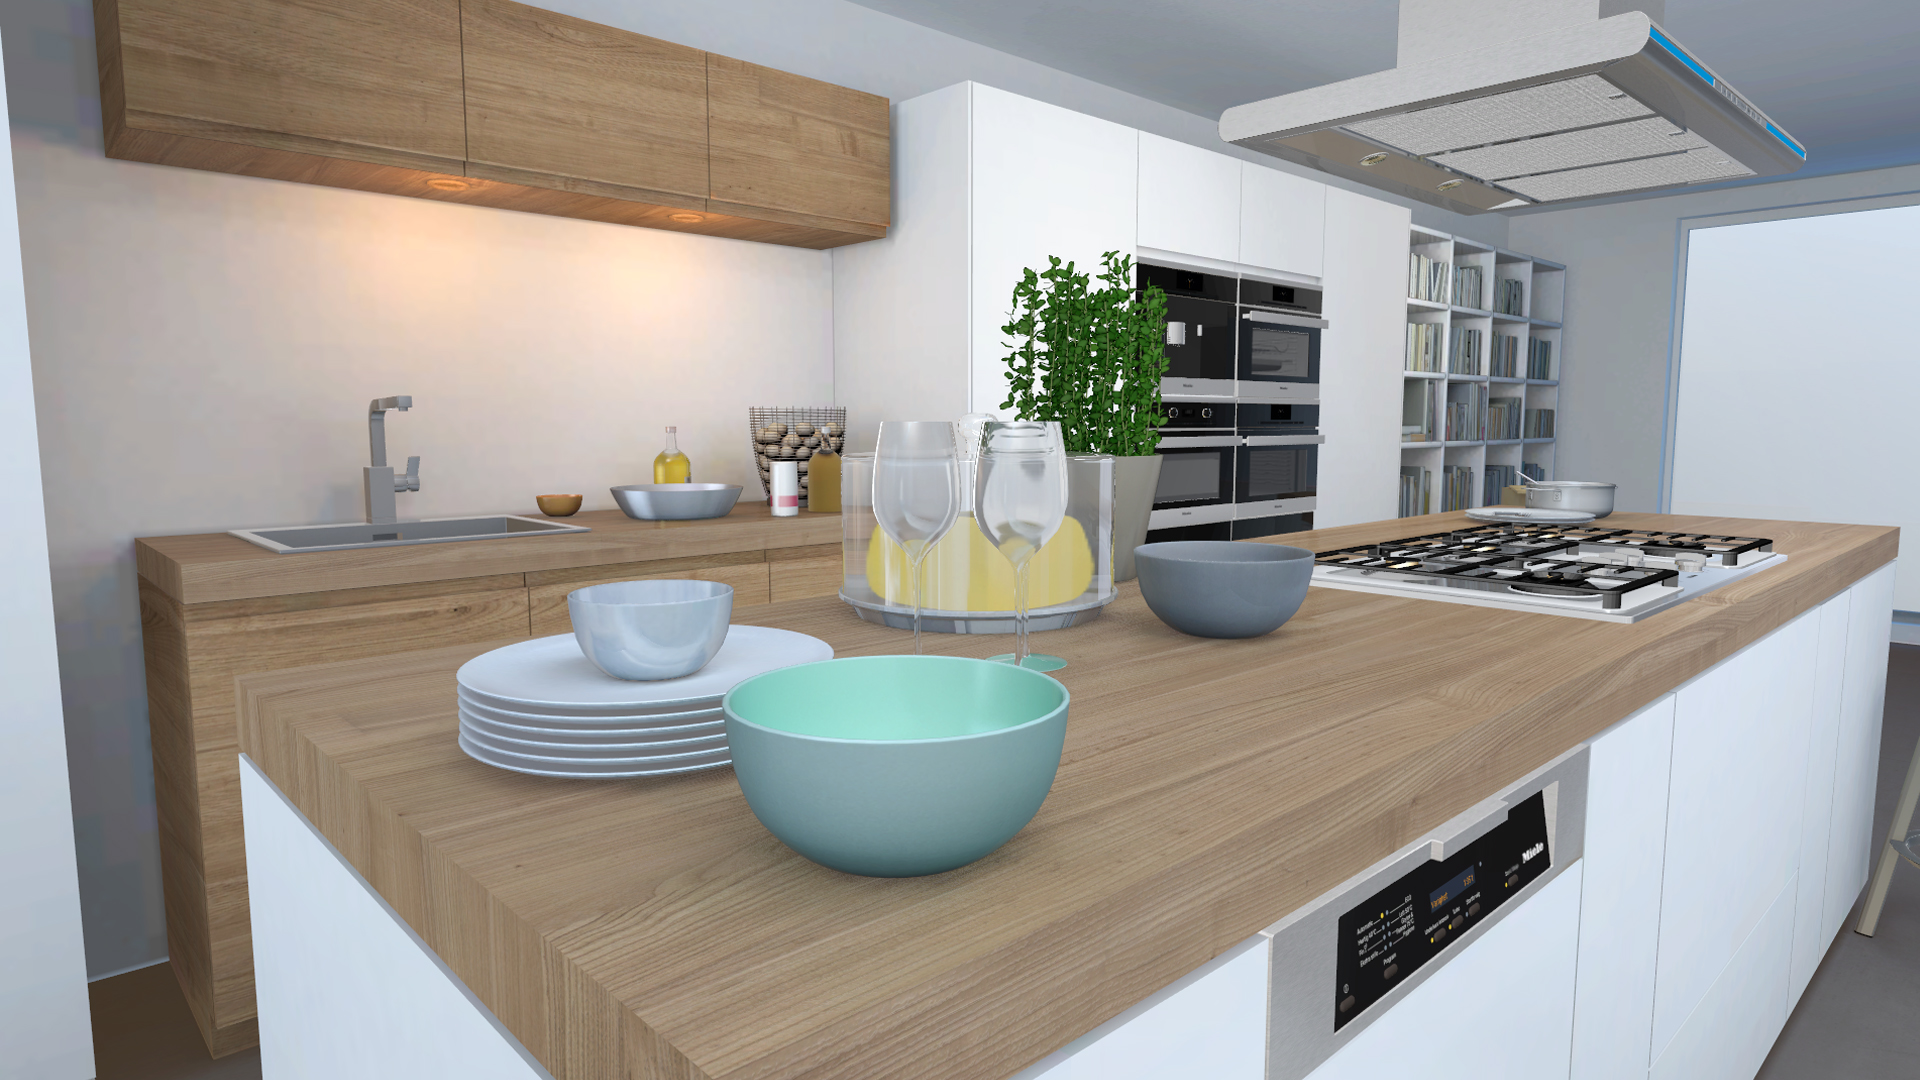 miele configurator visualization of wooden countertop with dishes